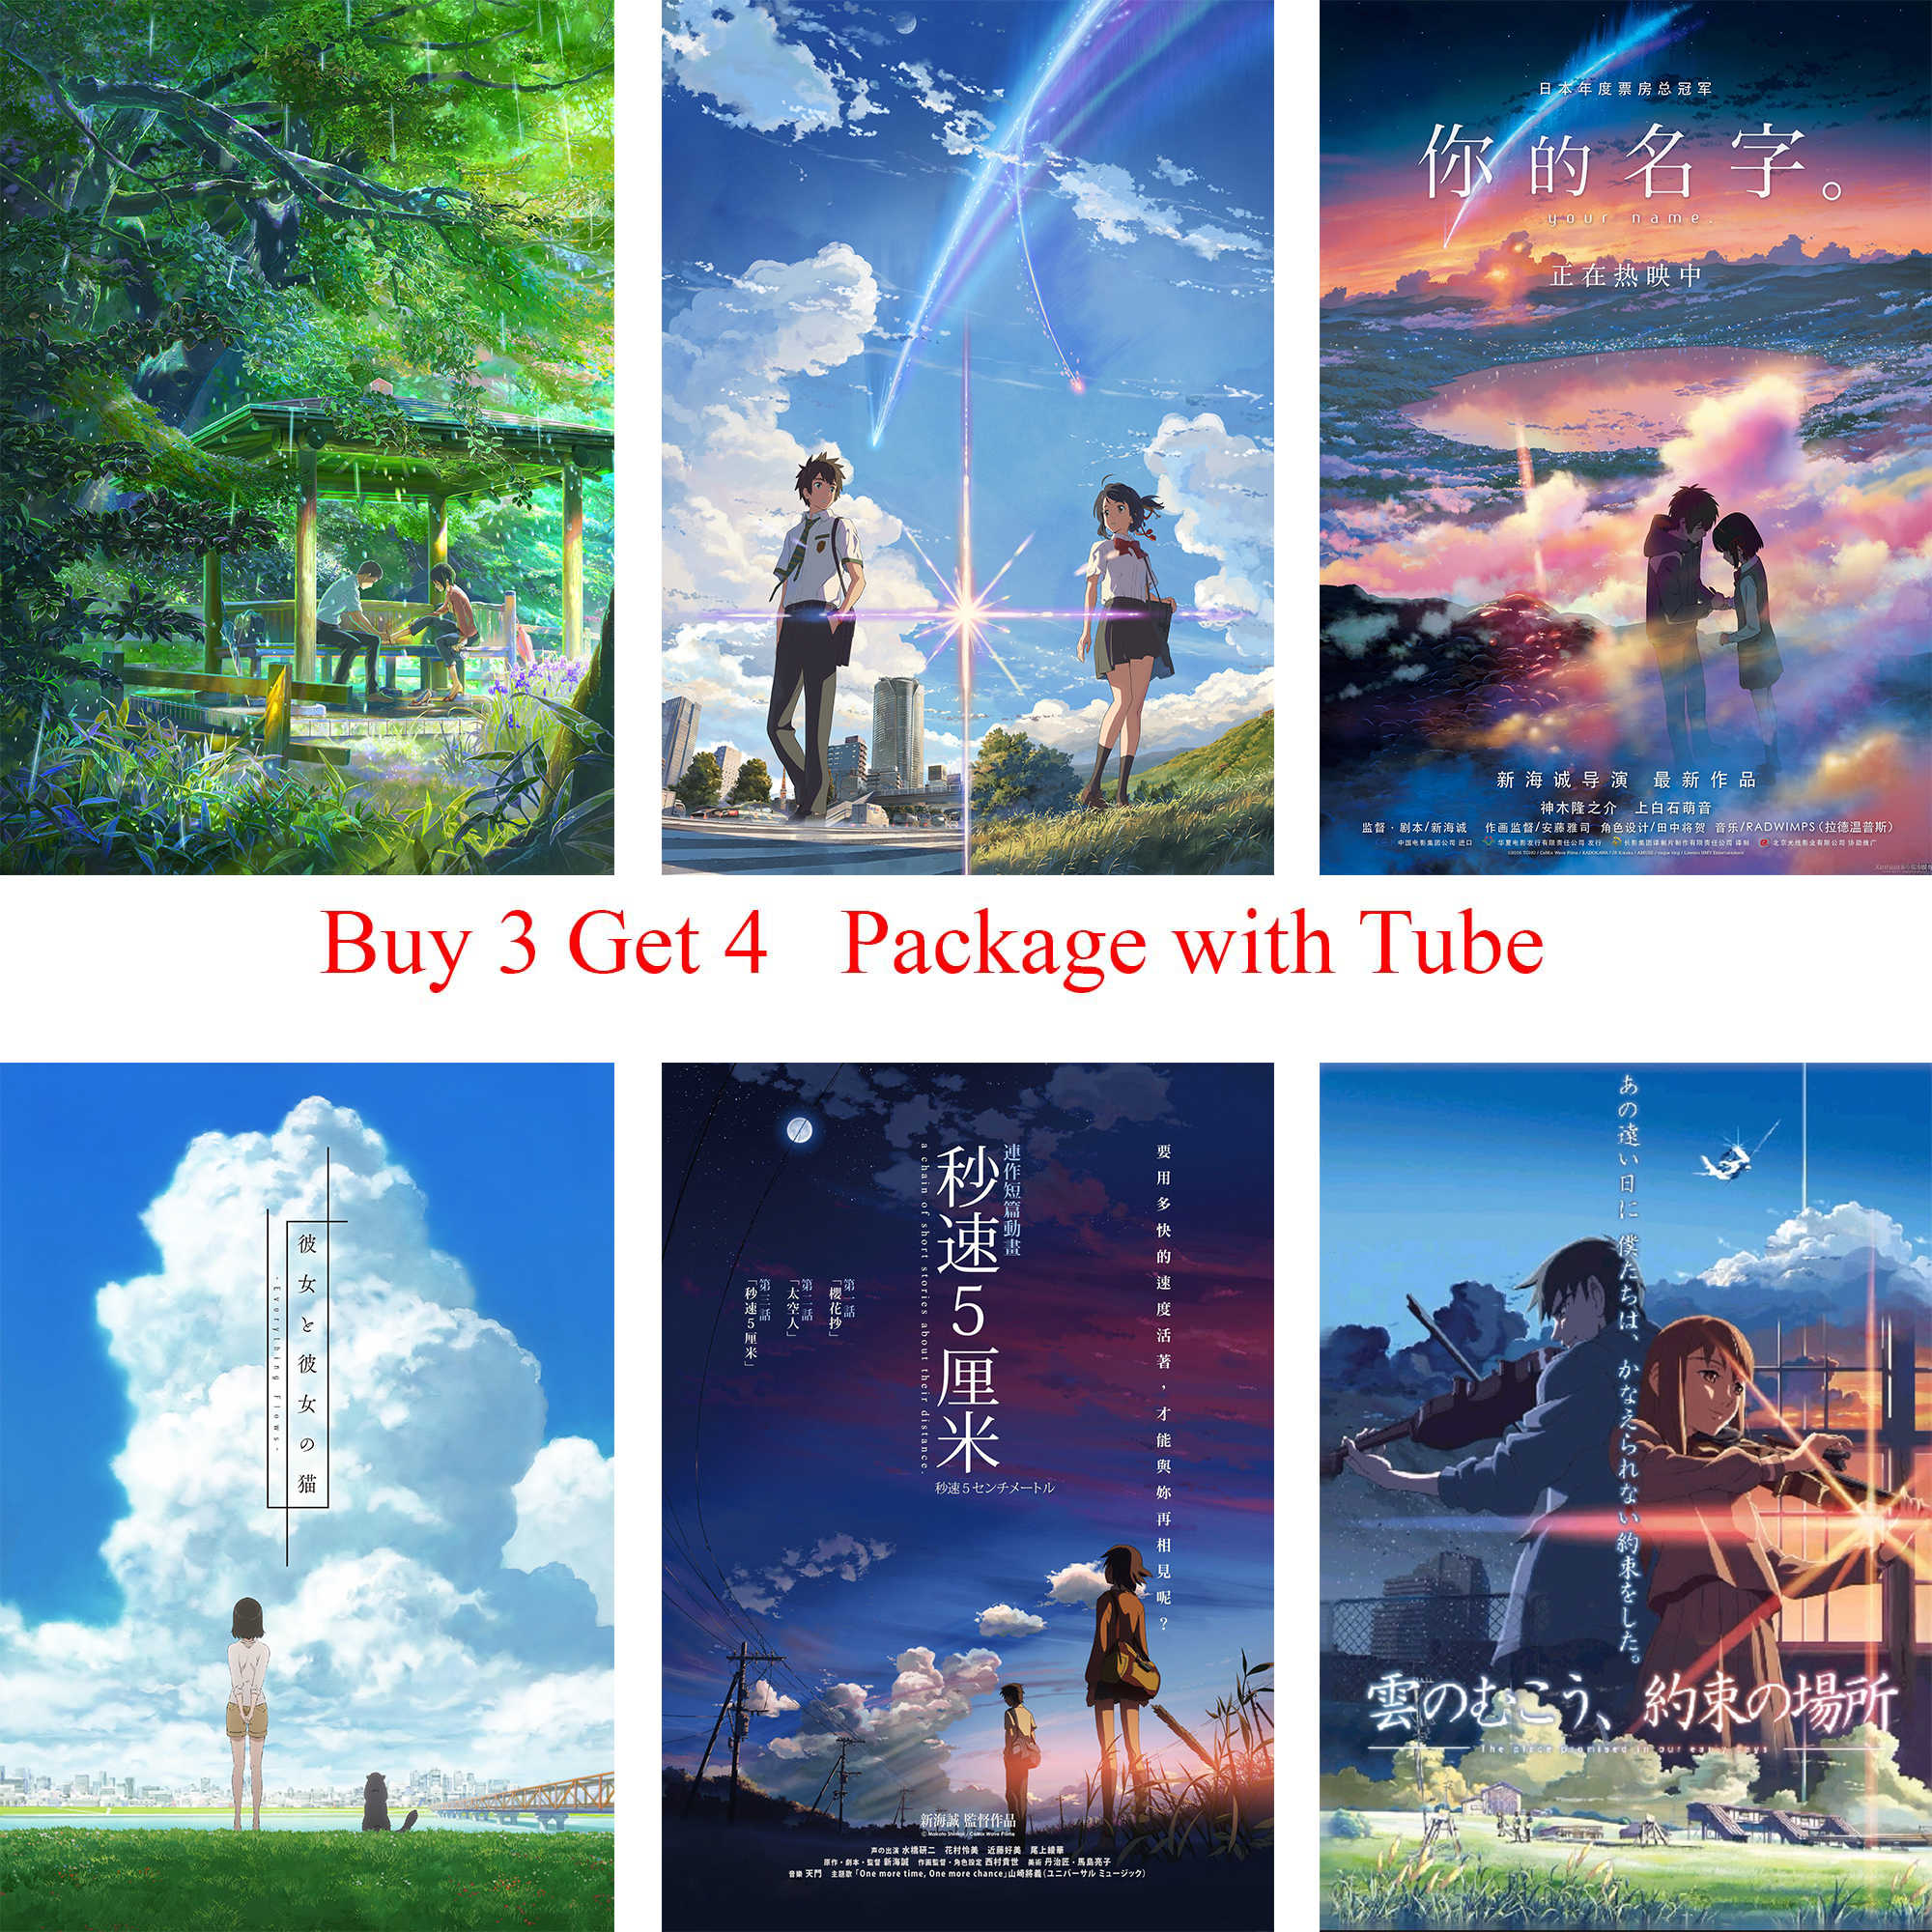 Japanse Cartoon Posters Makoto Shinkai Uw Naam Muurstickers Wit Gecoat Papier Prints Hoge Definition Woondecoratie